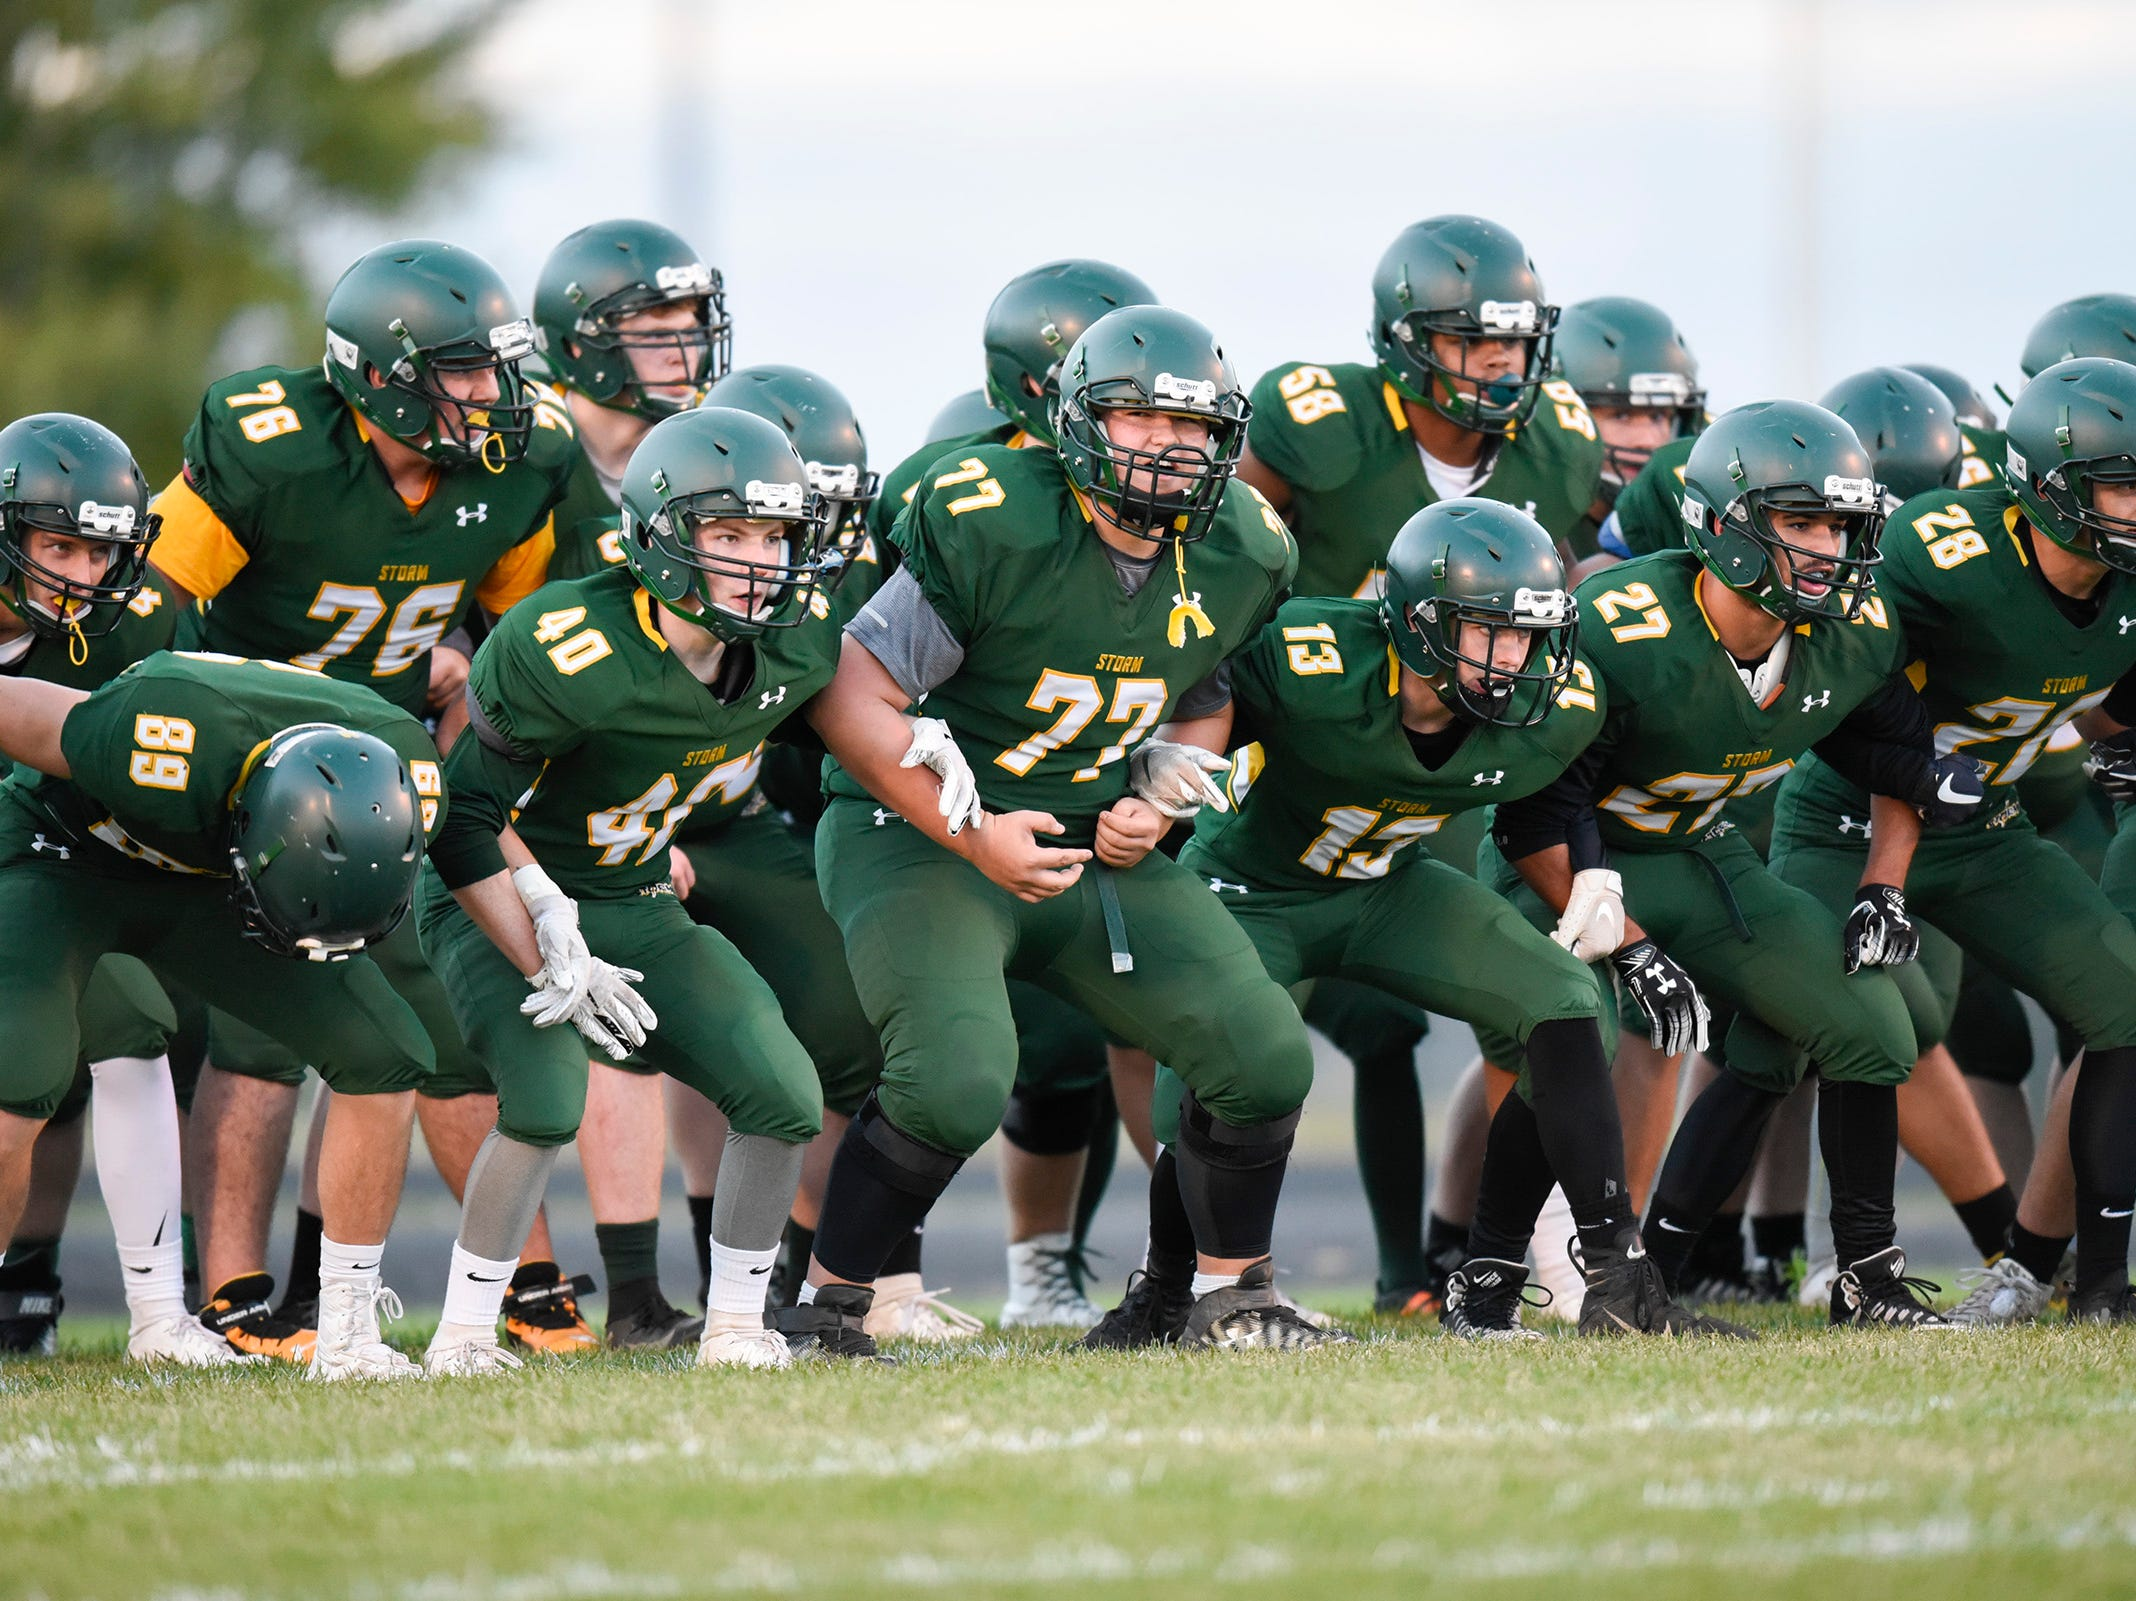 Sauk Rapids players get ready for the start of their game against Sartell Friday, Sept. 28, in Sauk Rapids.